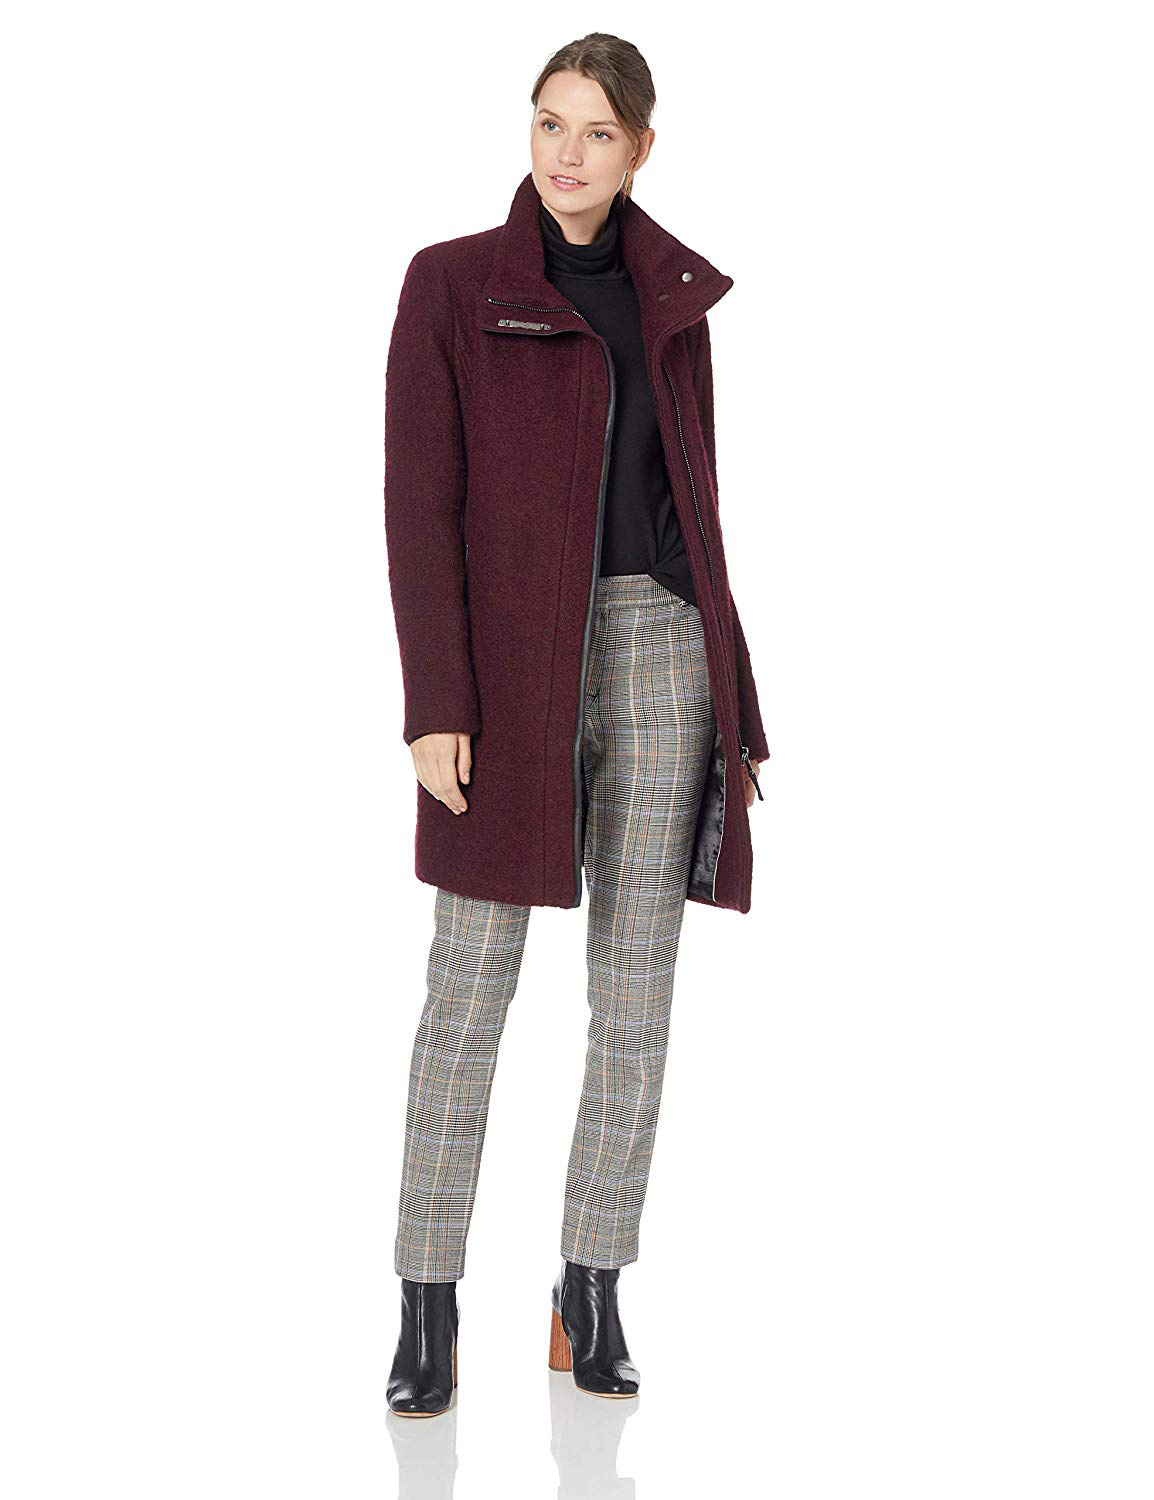 Calvin Klein Women's Wool Coat with Tunnel Collar and Pu Trim, Snap Bar Detail at Neck